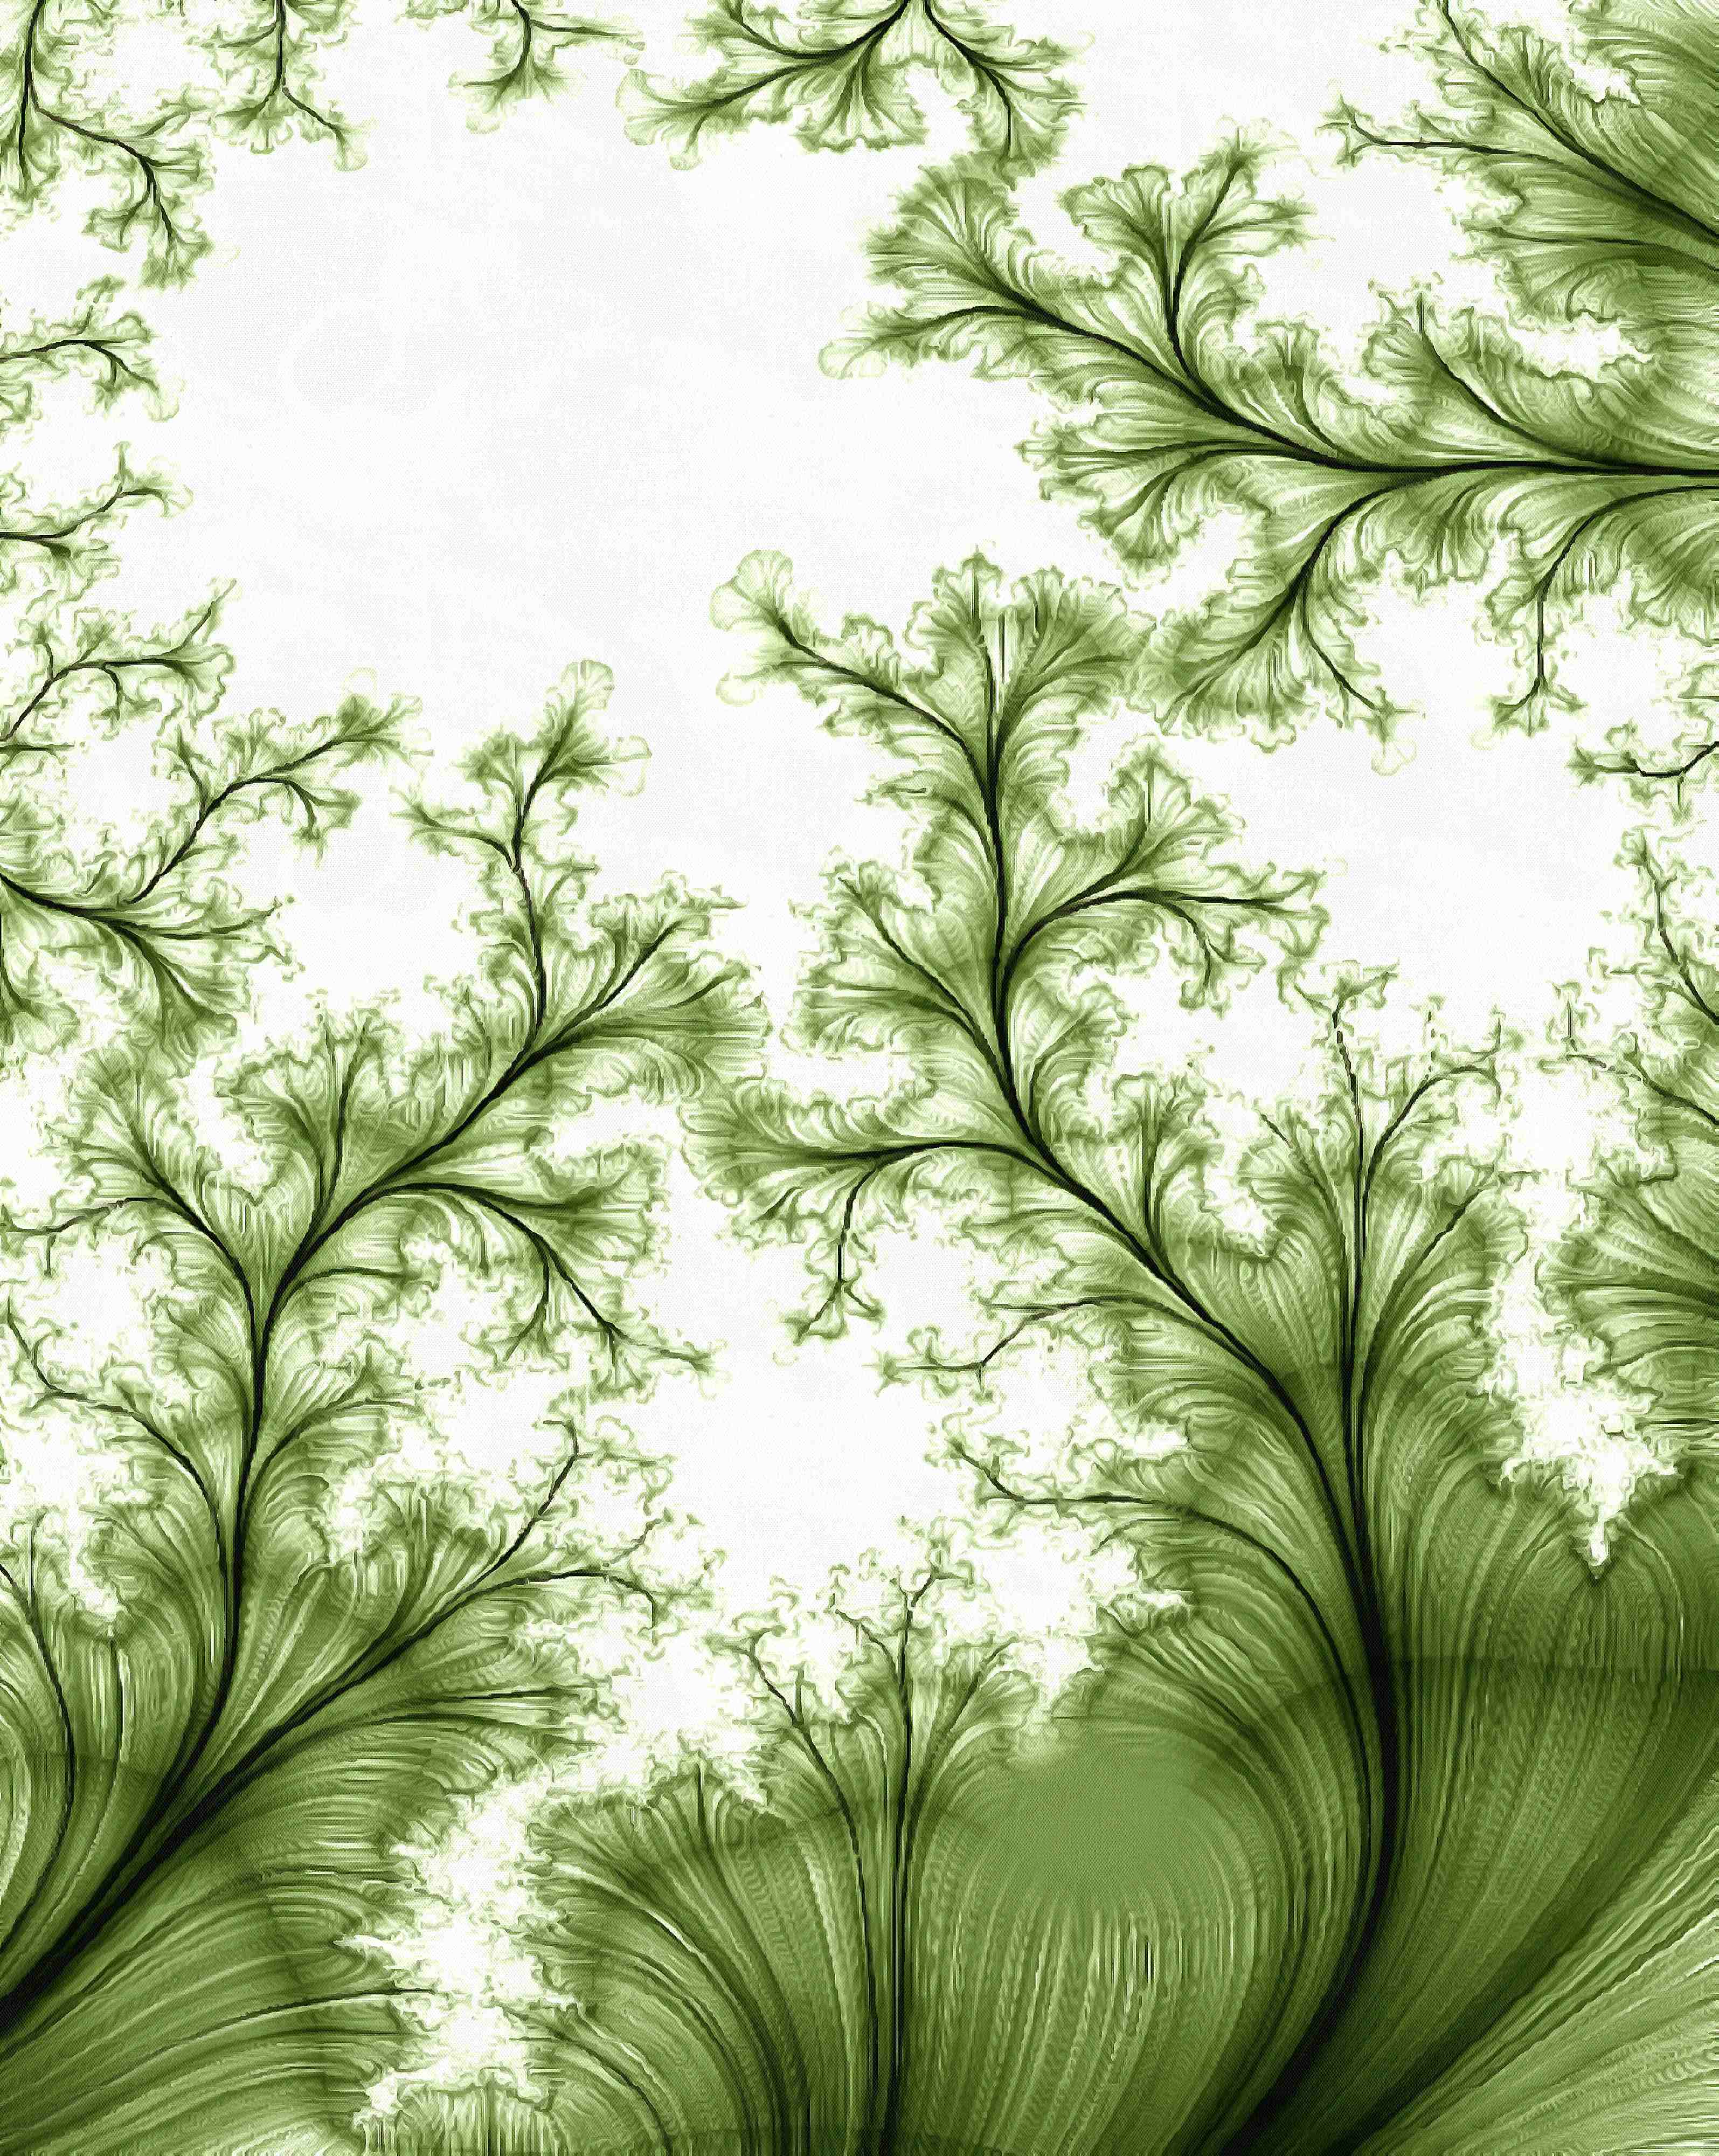 leaves,  curlicue abstract, flowers, fractal, graphic, line, fanned out, green , subjects stock free images, free illustrtions, free images, free image, public domain image, download free image